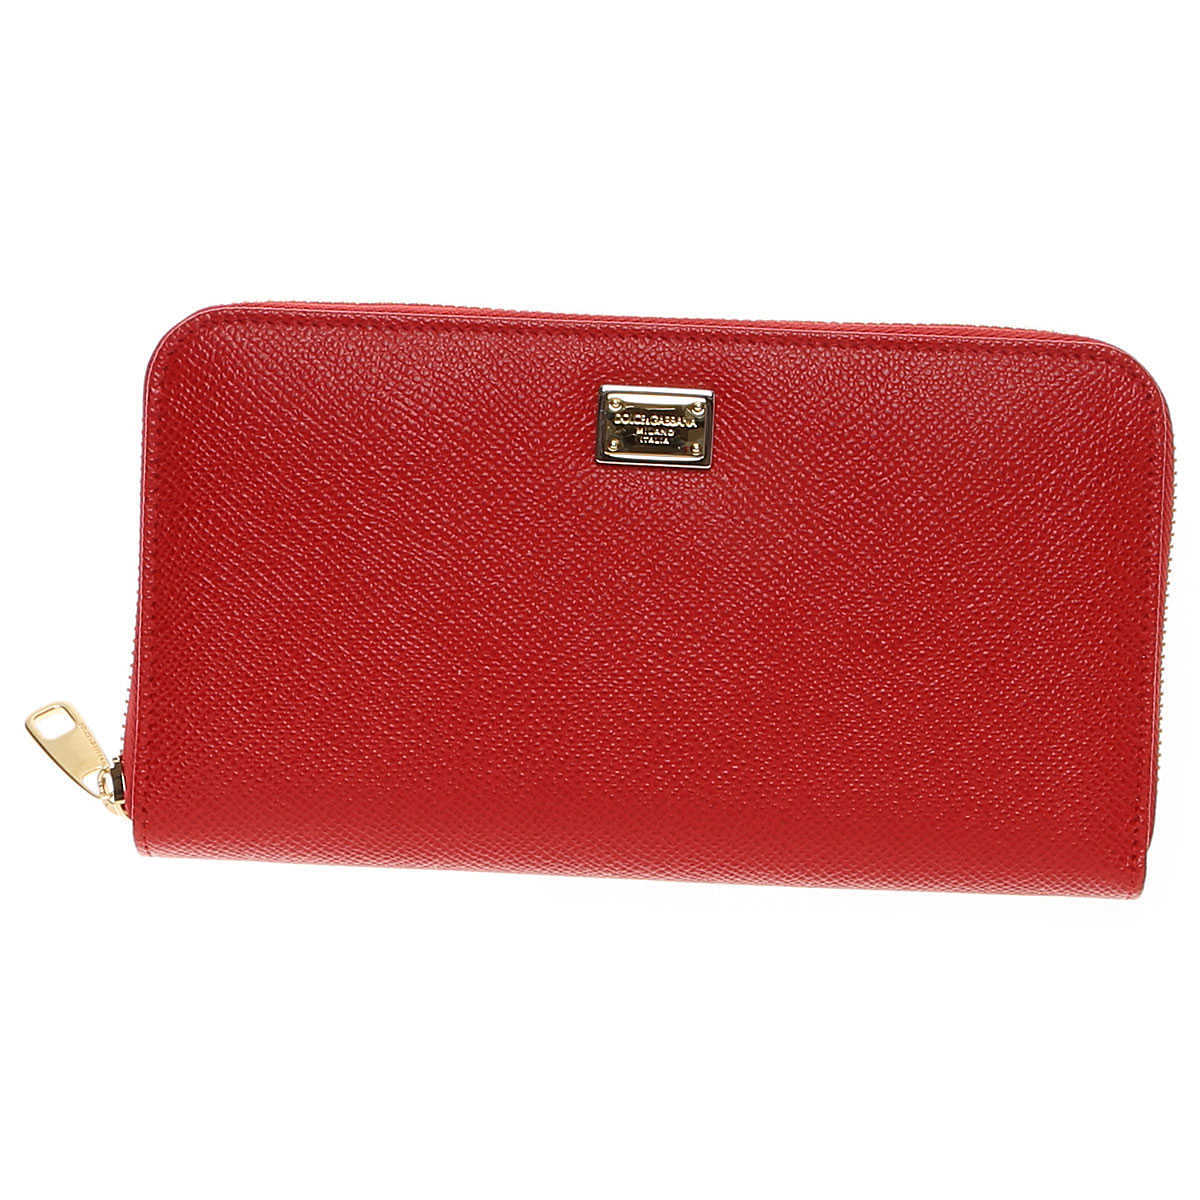 Dolce & Gabbana Wallet for Women On Sale in Outlet Dauphine Leather Zip-around  UK - GOOFASH